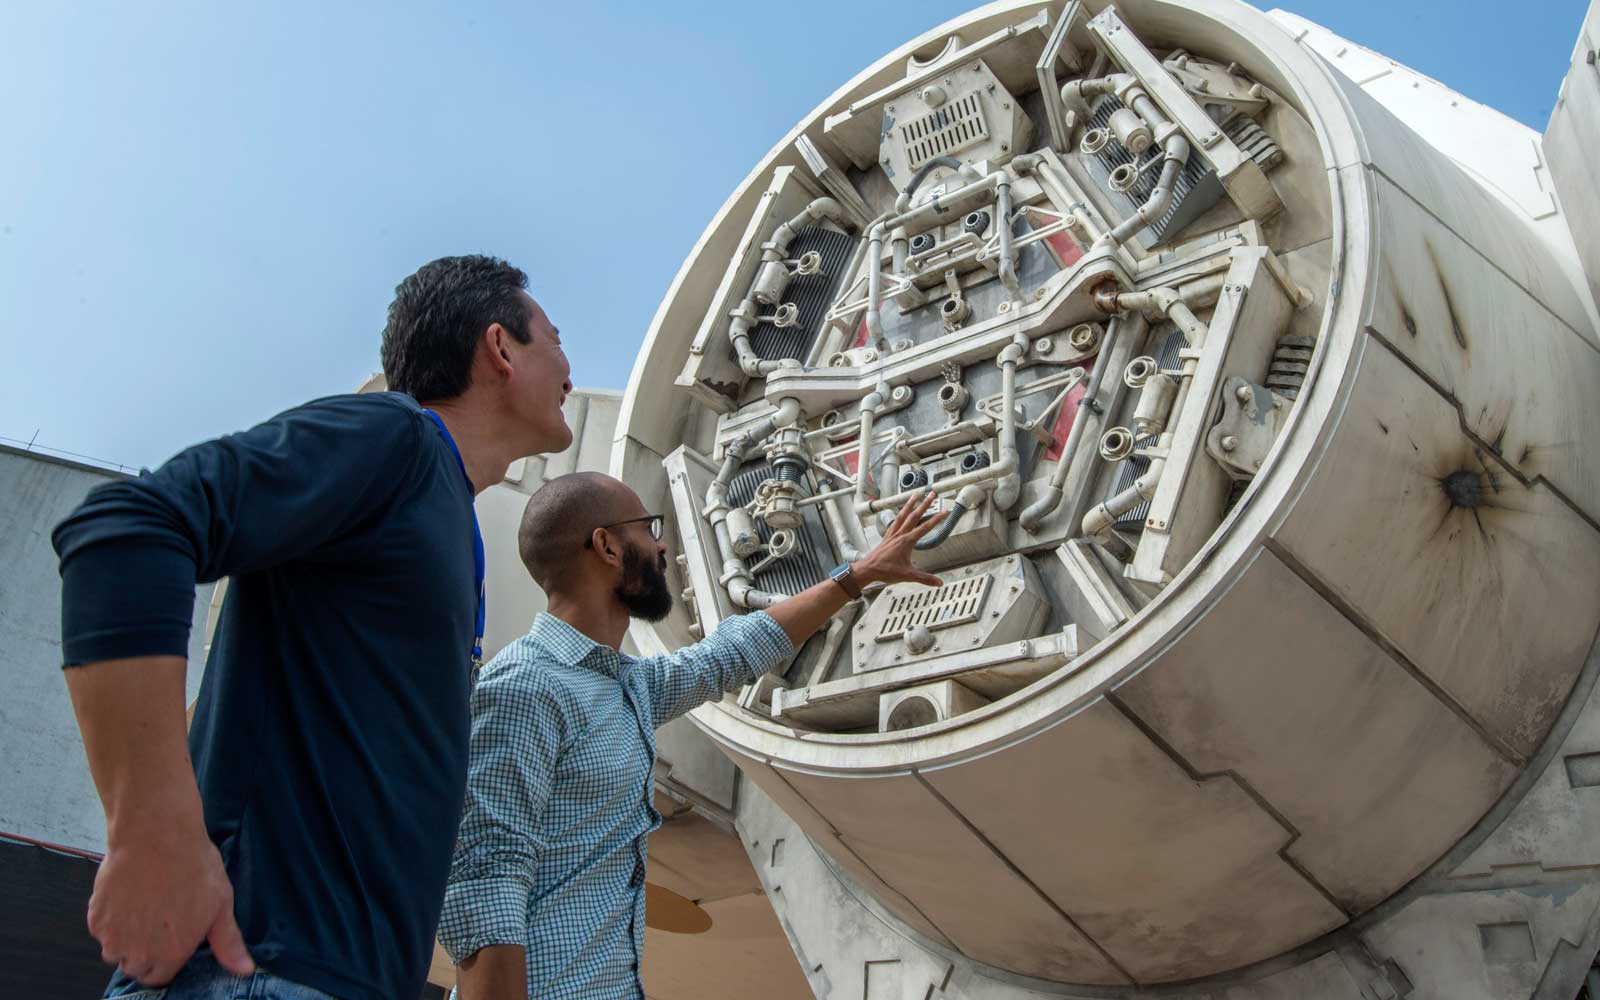 Here's Our First Behind-the-scenes Look at Disney's Star Wars Millennium Falcon Ride